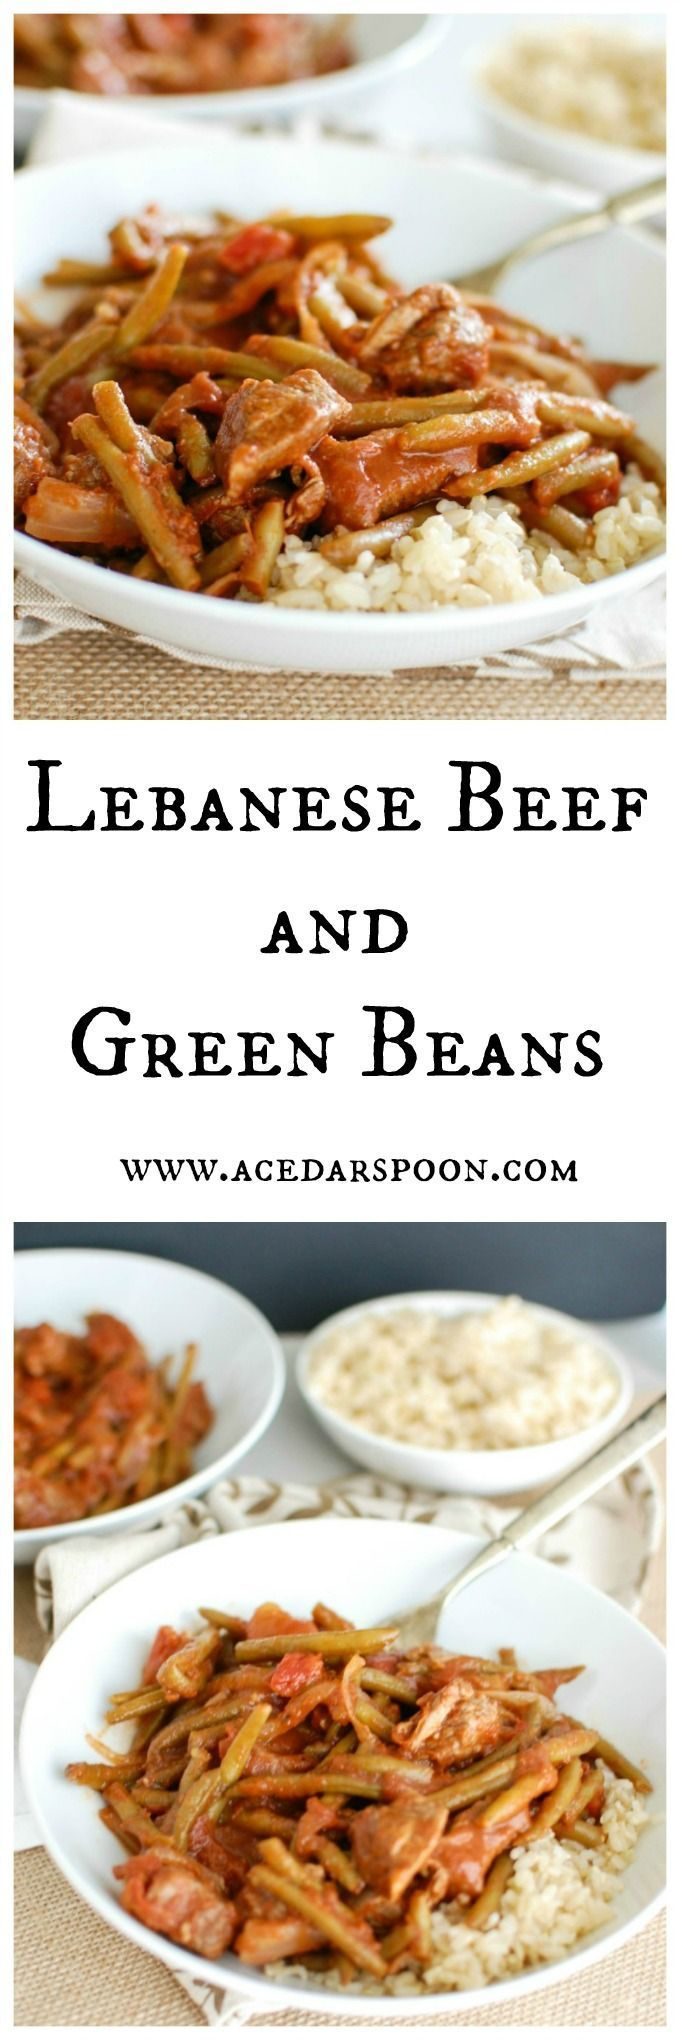 175 best lebanon sa7tayn images on pinterest arabic food 175 best lebanon sa7tayn images on pinterest arabic food cooking recipes and drink forumfinder Image collections